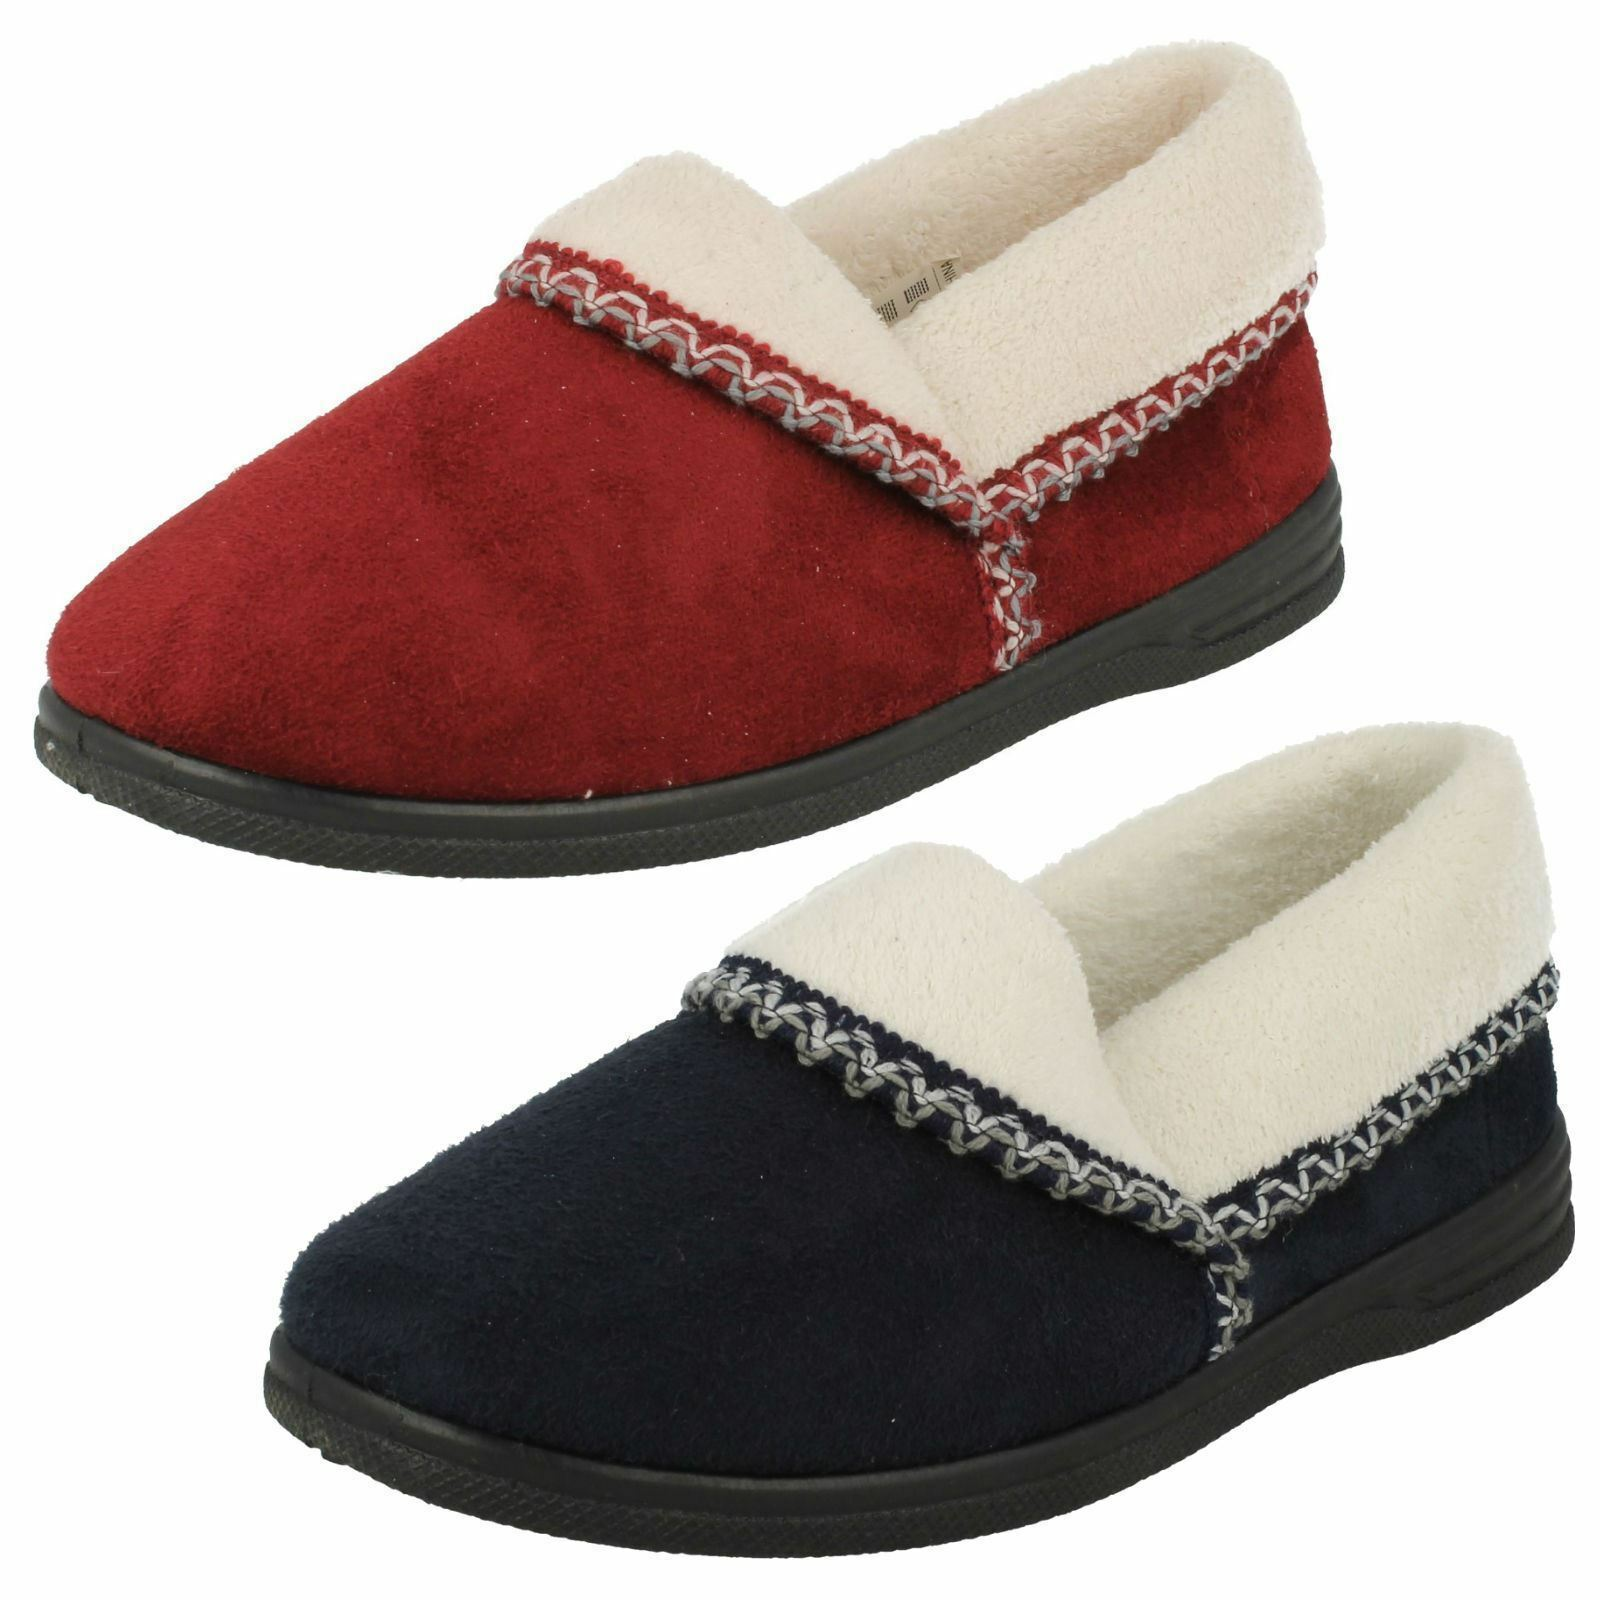 Gentlemen/Ladies Ladies Sandpiper Slippers varieties Style - Ila New varieties Slippers are launched special function Pick up at the boutique e4e0d4